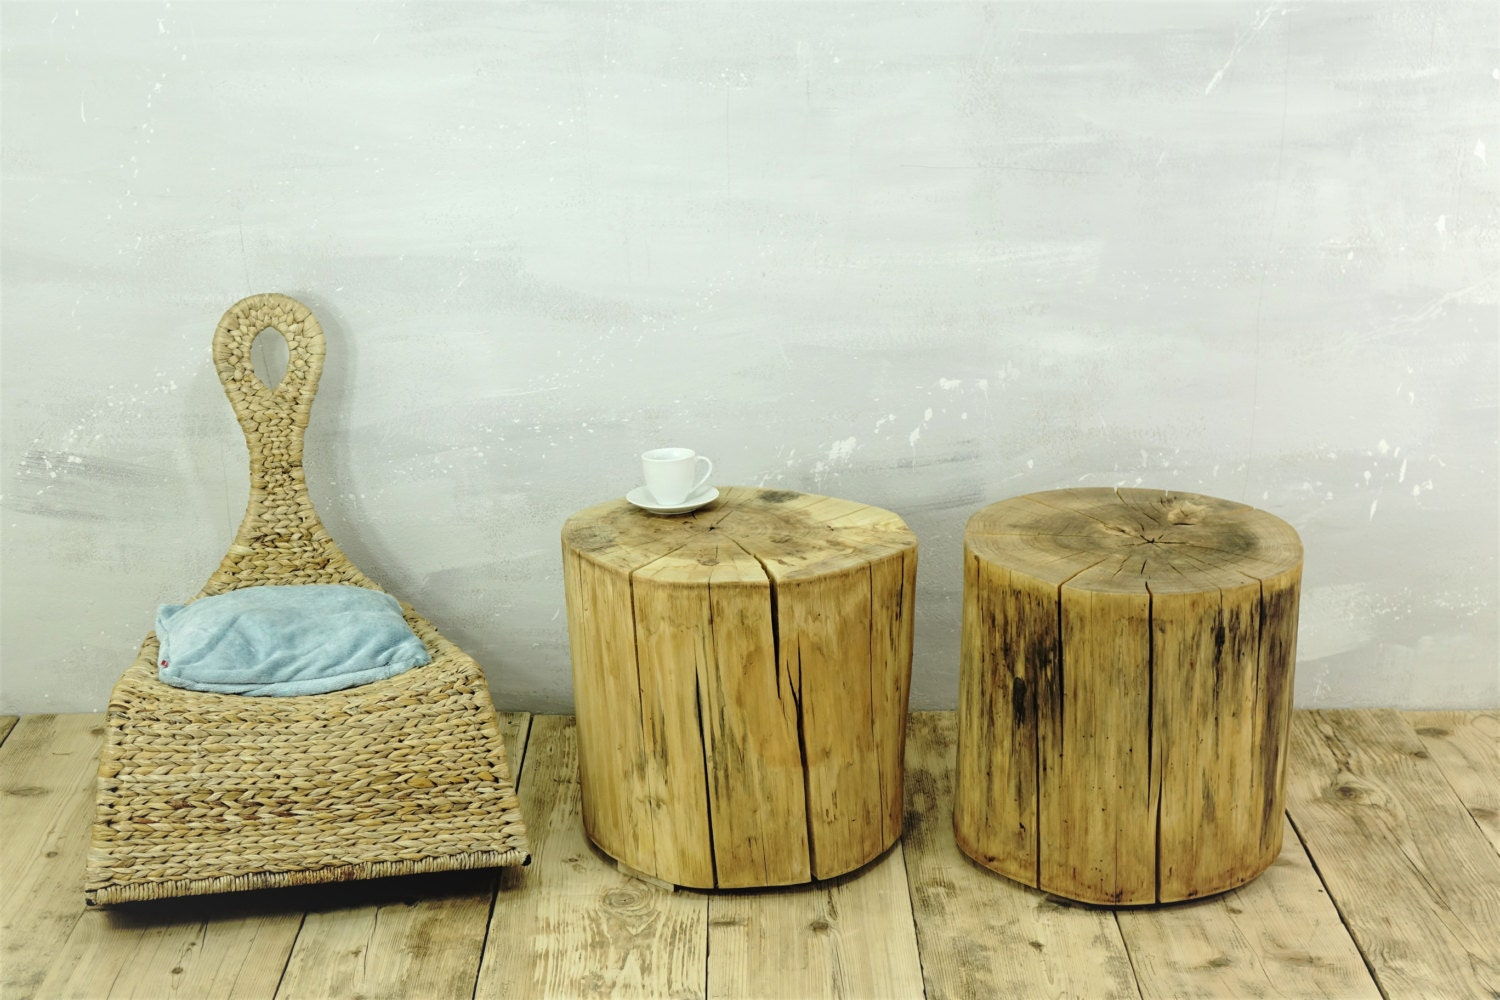 tree stumps table set of 2 rustic tree trunks baumstumpf baumstamm tisch sgabello ceppo di legno. Black Bedroom Furniture Sets. Home Design Ideas